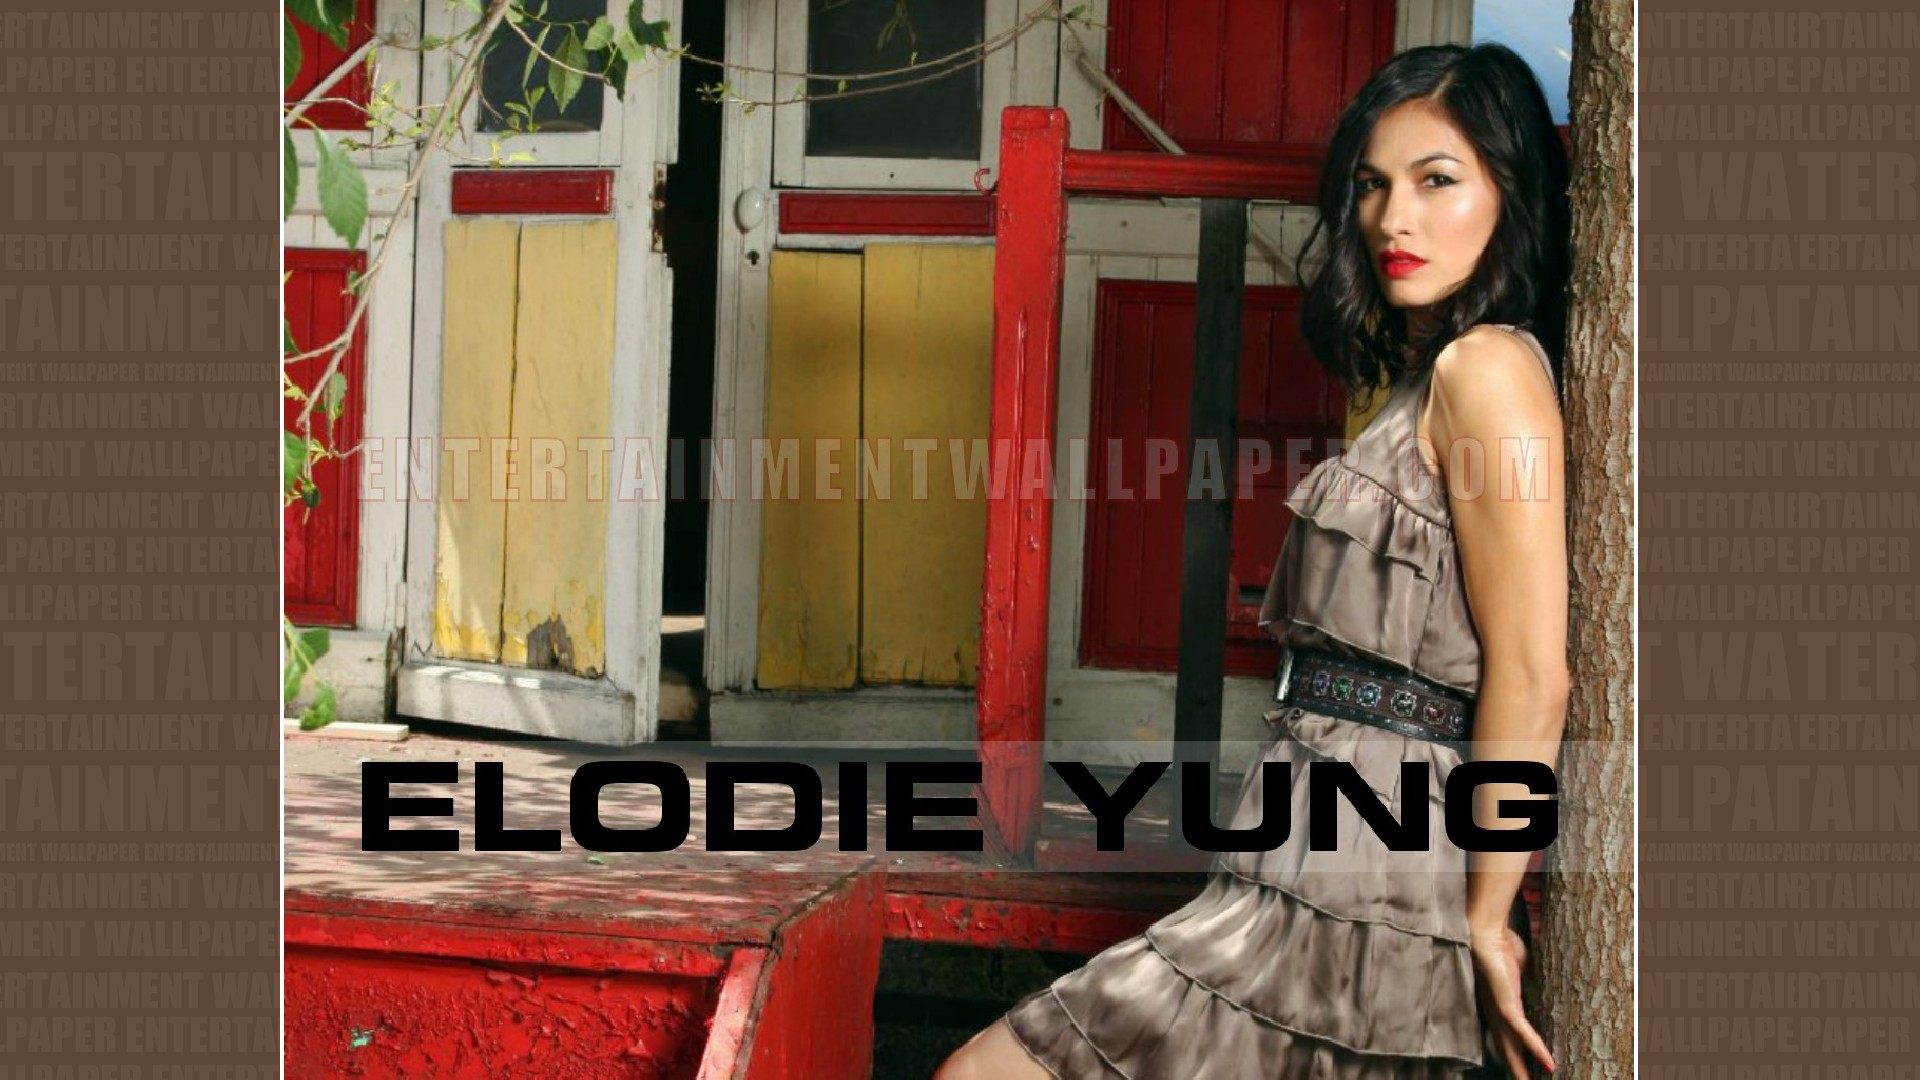 1920x1080 - Elodie Yung Wallpapers 19